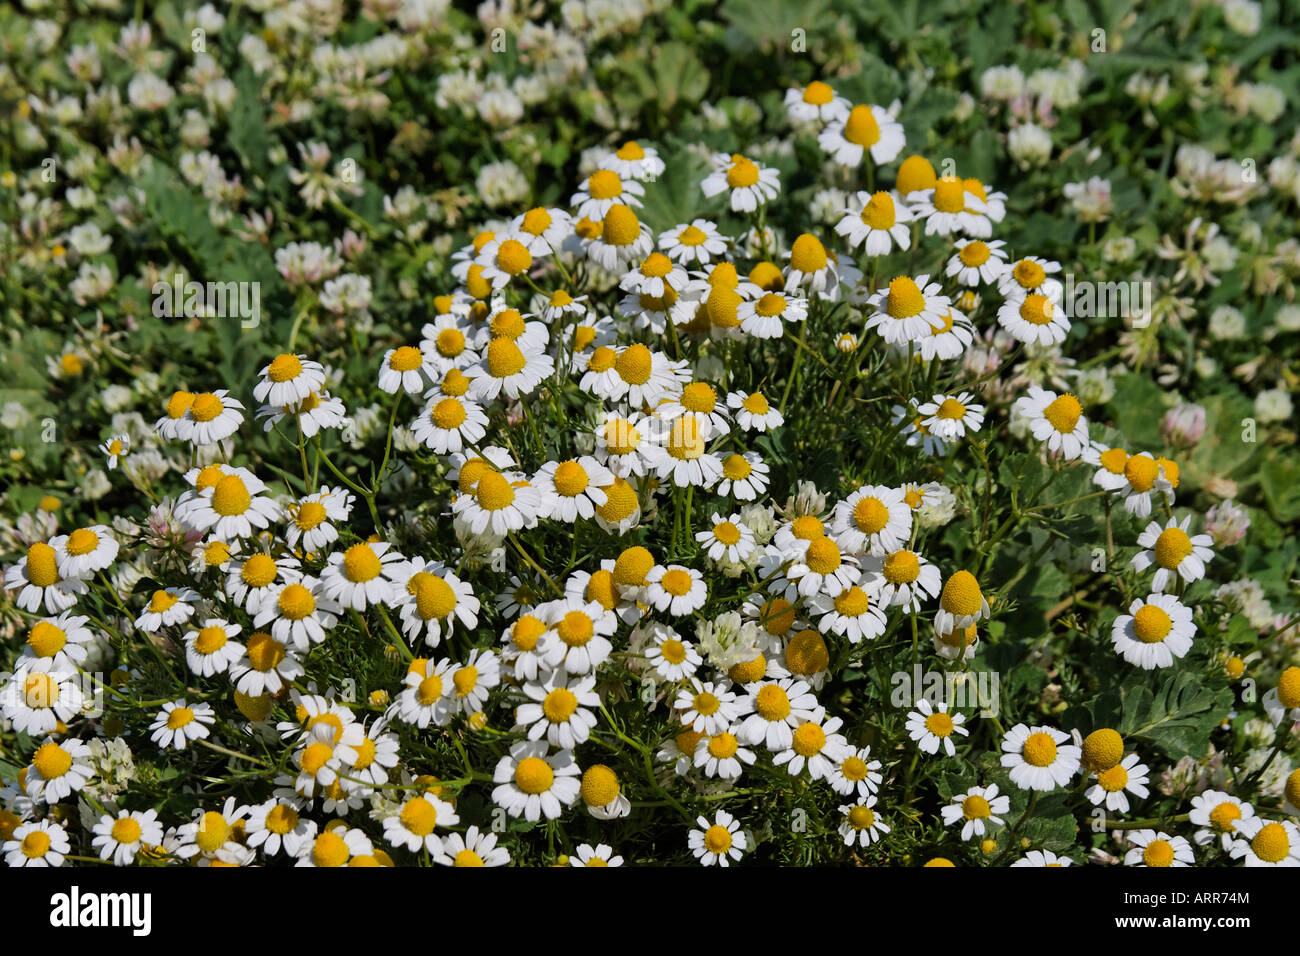 scented mayweed matricaria recutita asteraceae echte kamille stockfoto lizenzfreies bild. Black Bedroom Furniture Sets. Home Design Ideas